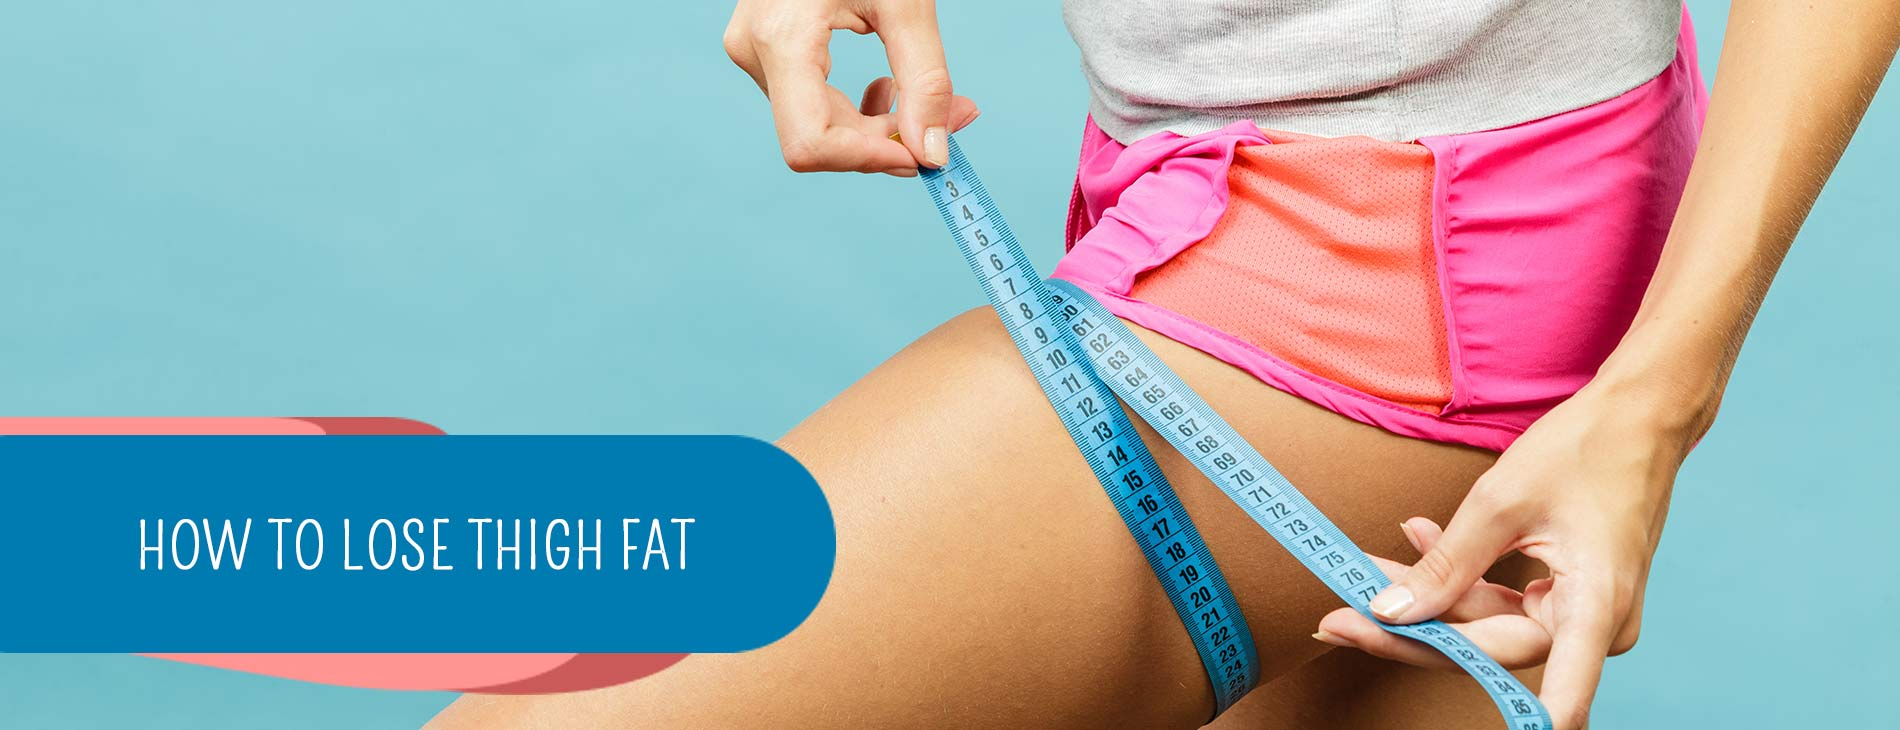 How-To-Lose-Thigh-Fat